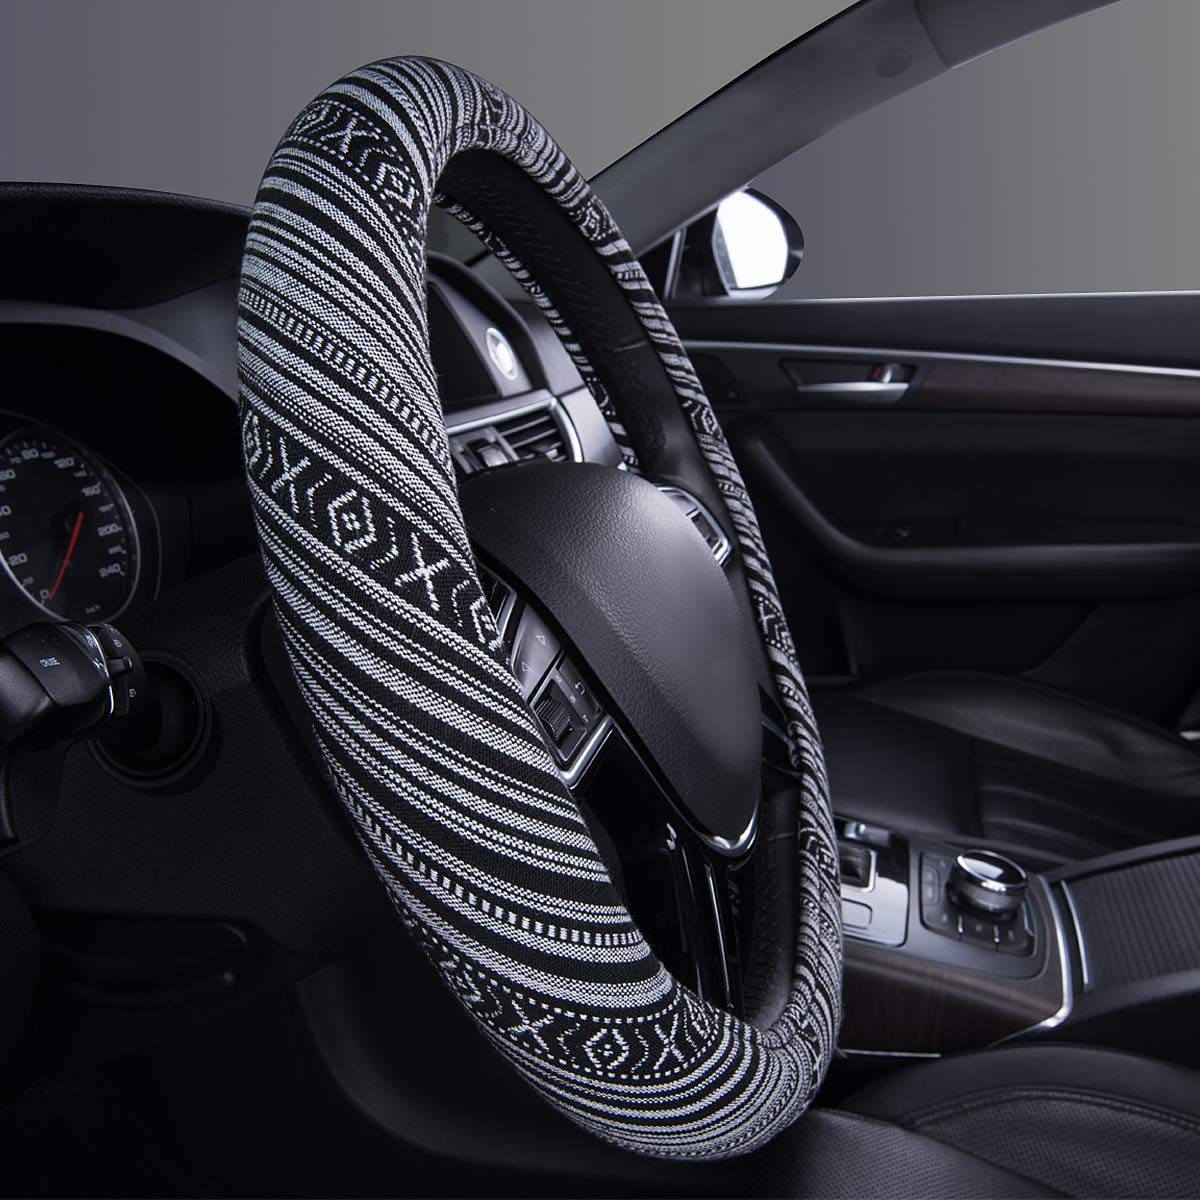 CAR PASS Flax Cloth Pretty Ethnic Style Universal Fit Steering Wheel Cover Colorful Fit for Suvs,Sedans,Cars,Trucks